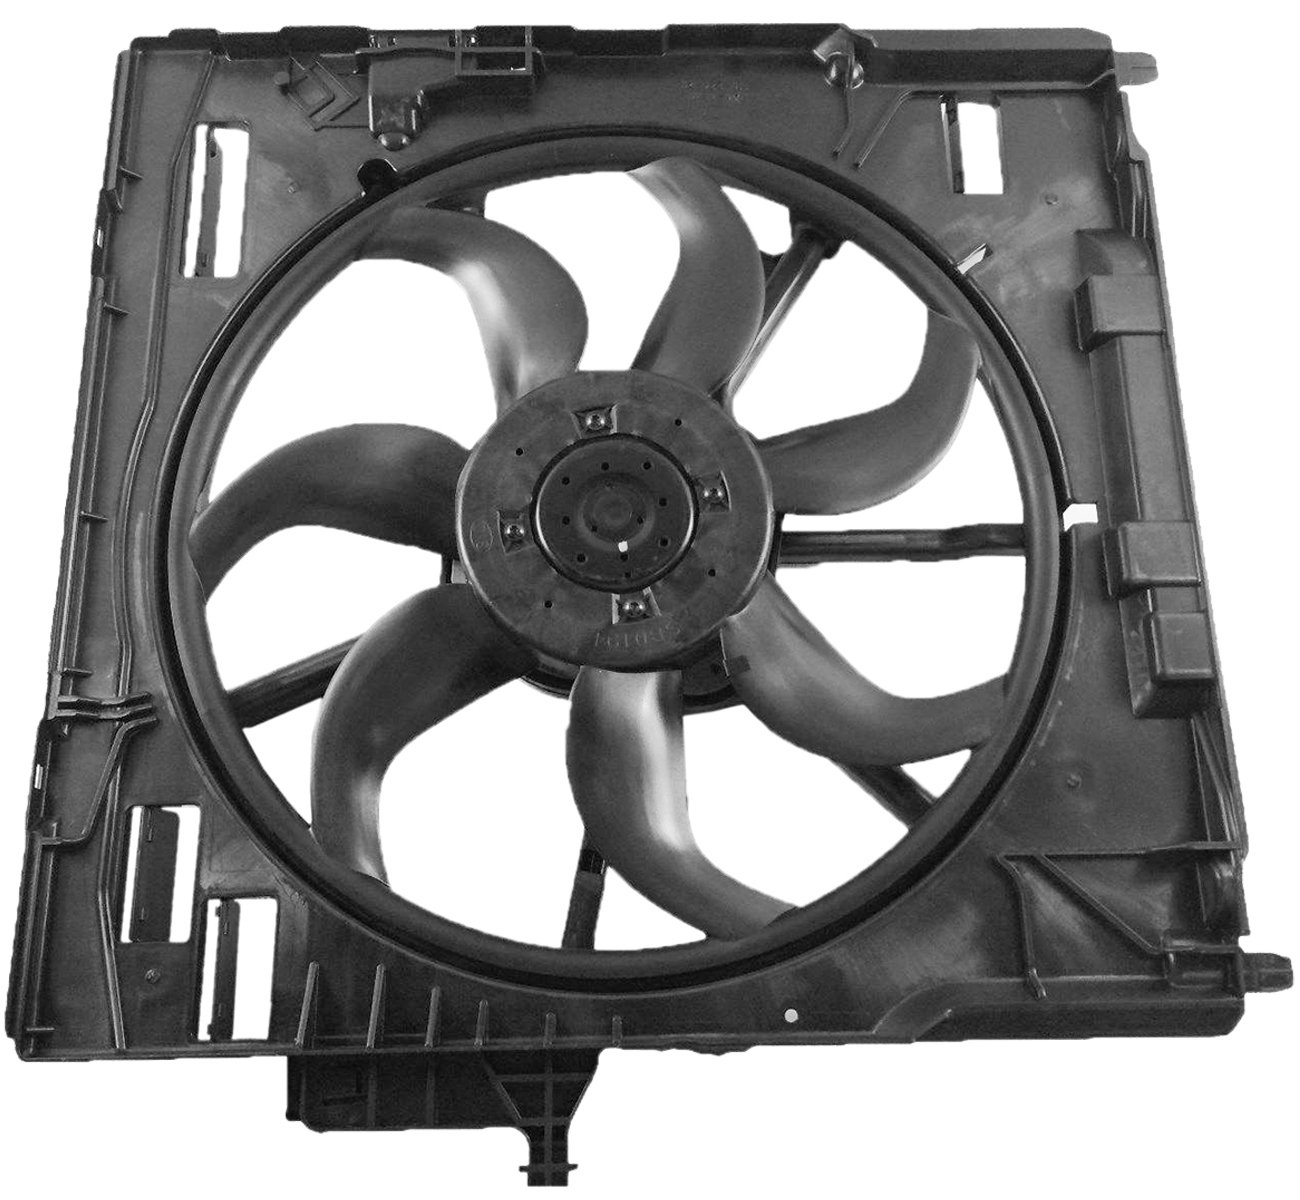 TOPAZ 17427598740 Radiator Cooling Fan Motor Assembly for BMW E70 X5 07-10